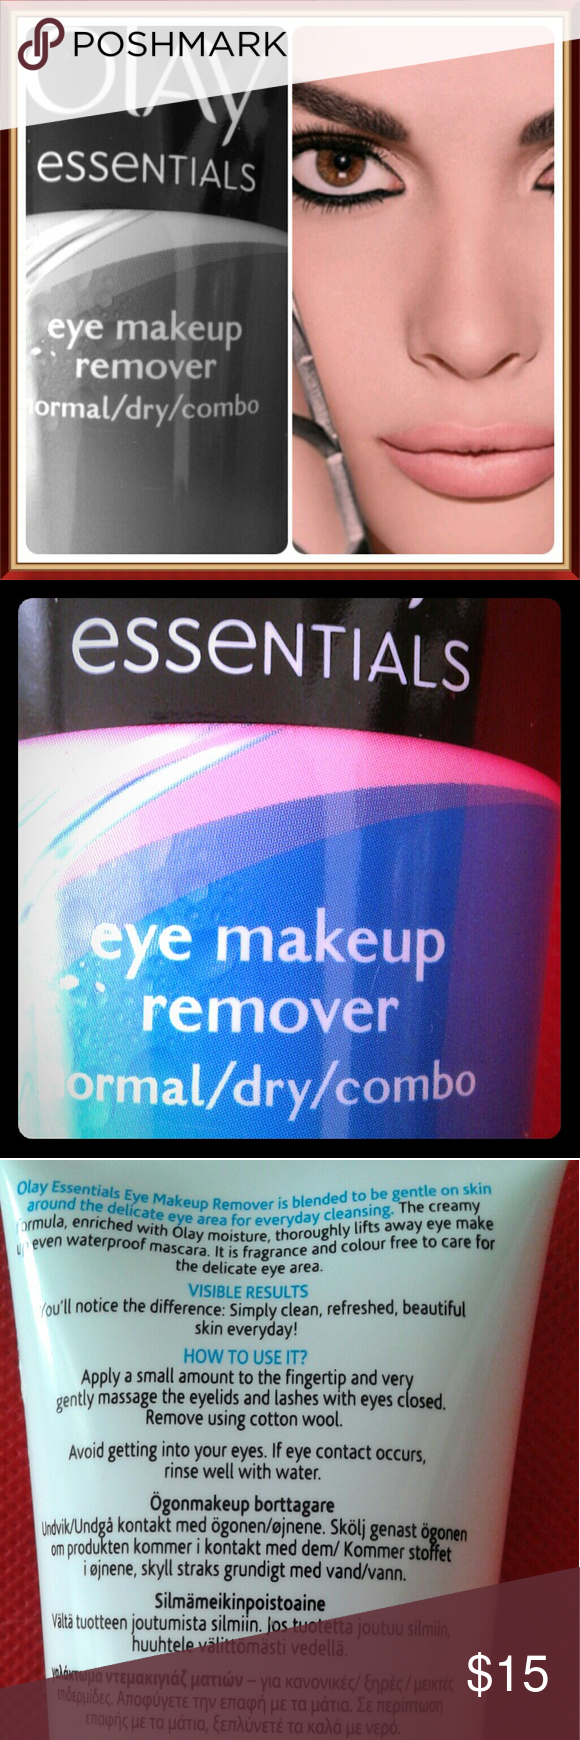 Eye Makeup Remover Olay Essentials I make up remover for